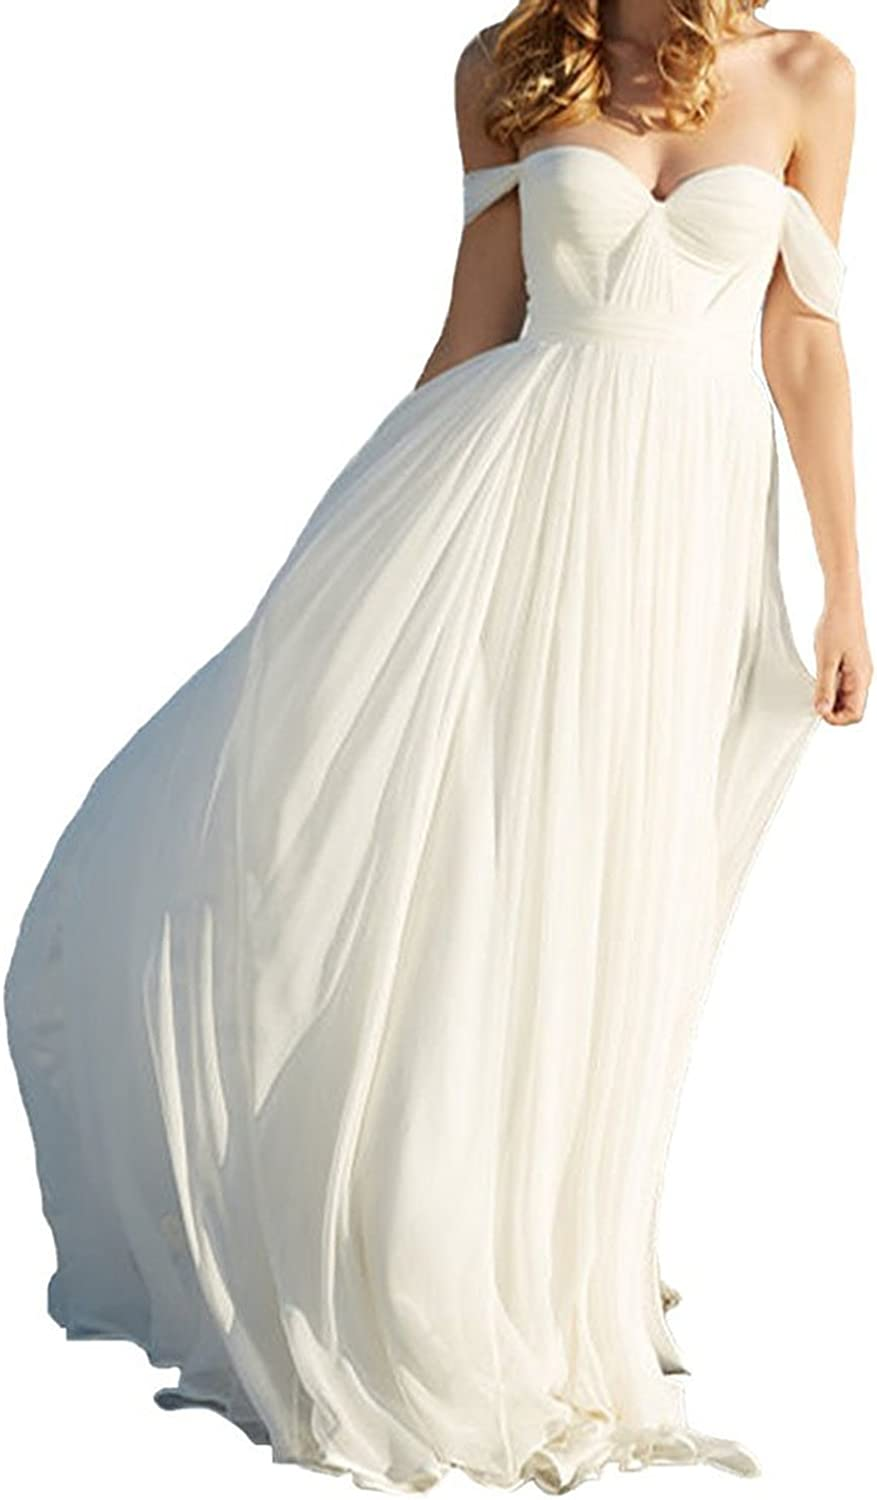 CharmingBridal Women's Sexy Off The Shoulder White Ivory Wedding Dresses